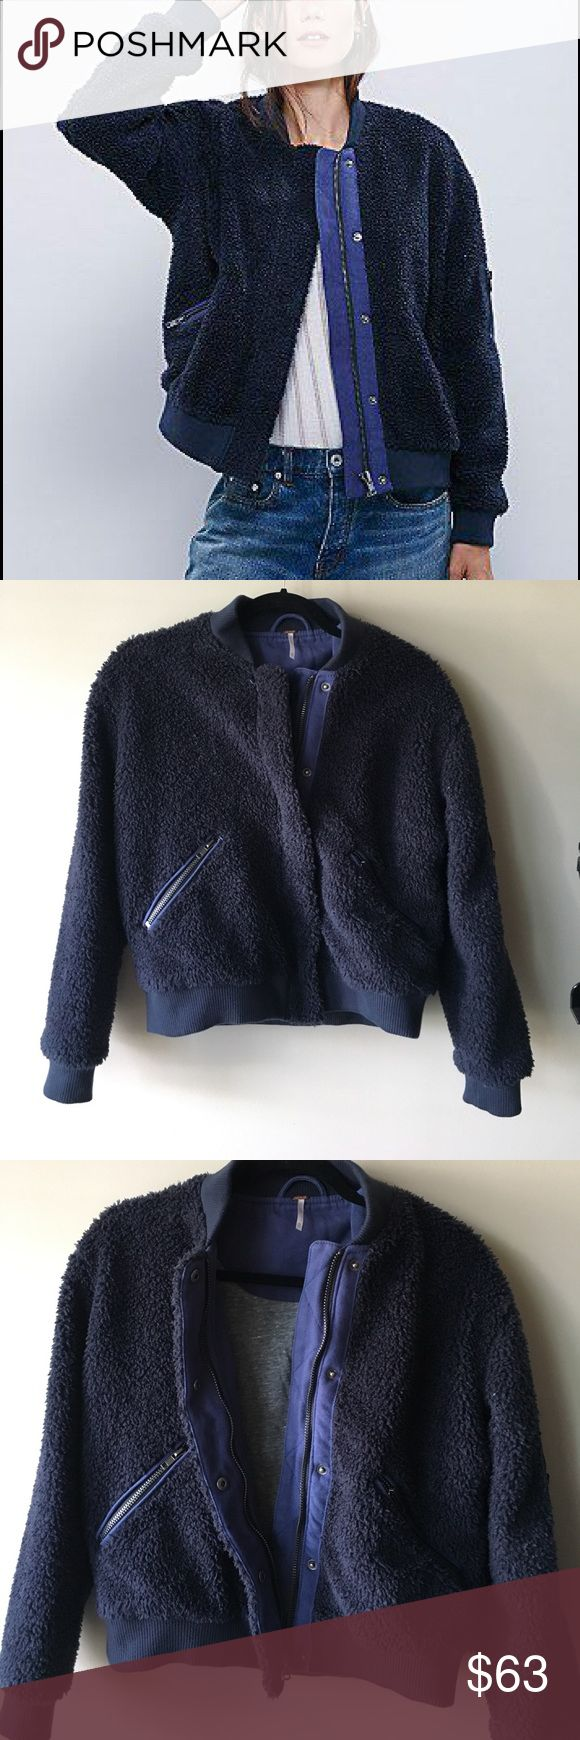 Free People Womens Teddy Aviator Jacket soft teddy exterior, grey jersey material interior, super warm, great condition Free People Jackets & Coats